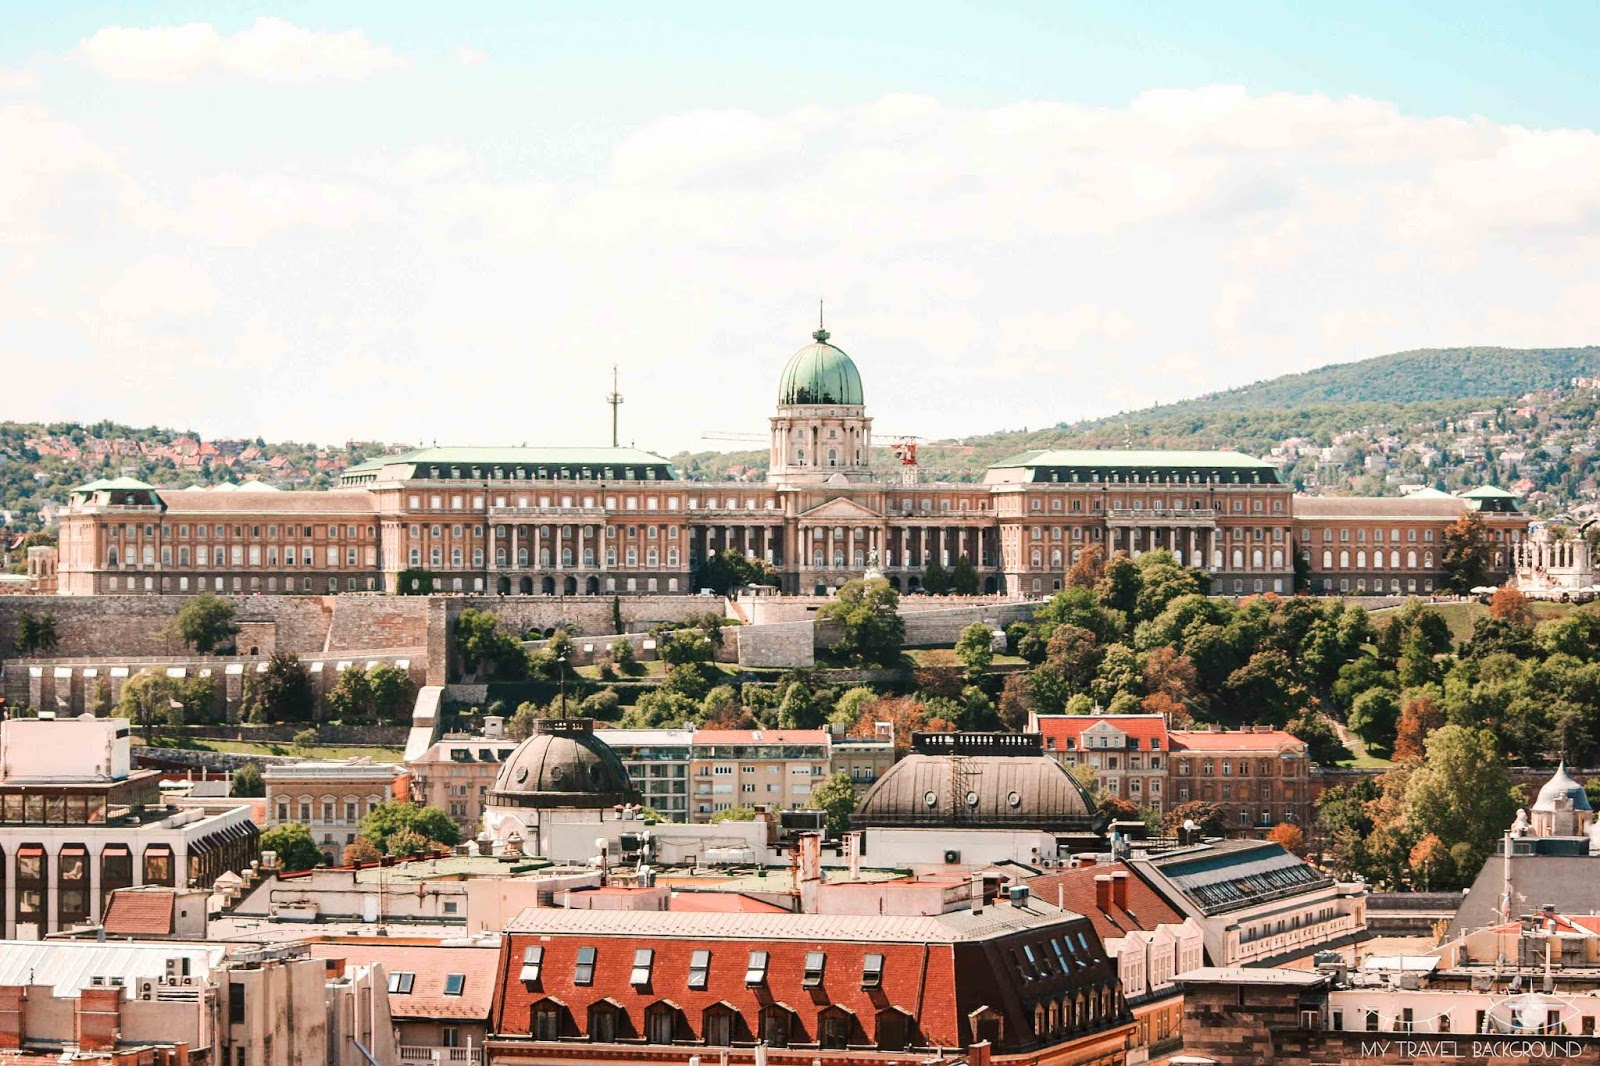 My Travel Background : 1 week-end à Budapest en Hongrie - Le Chateau de Budapest